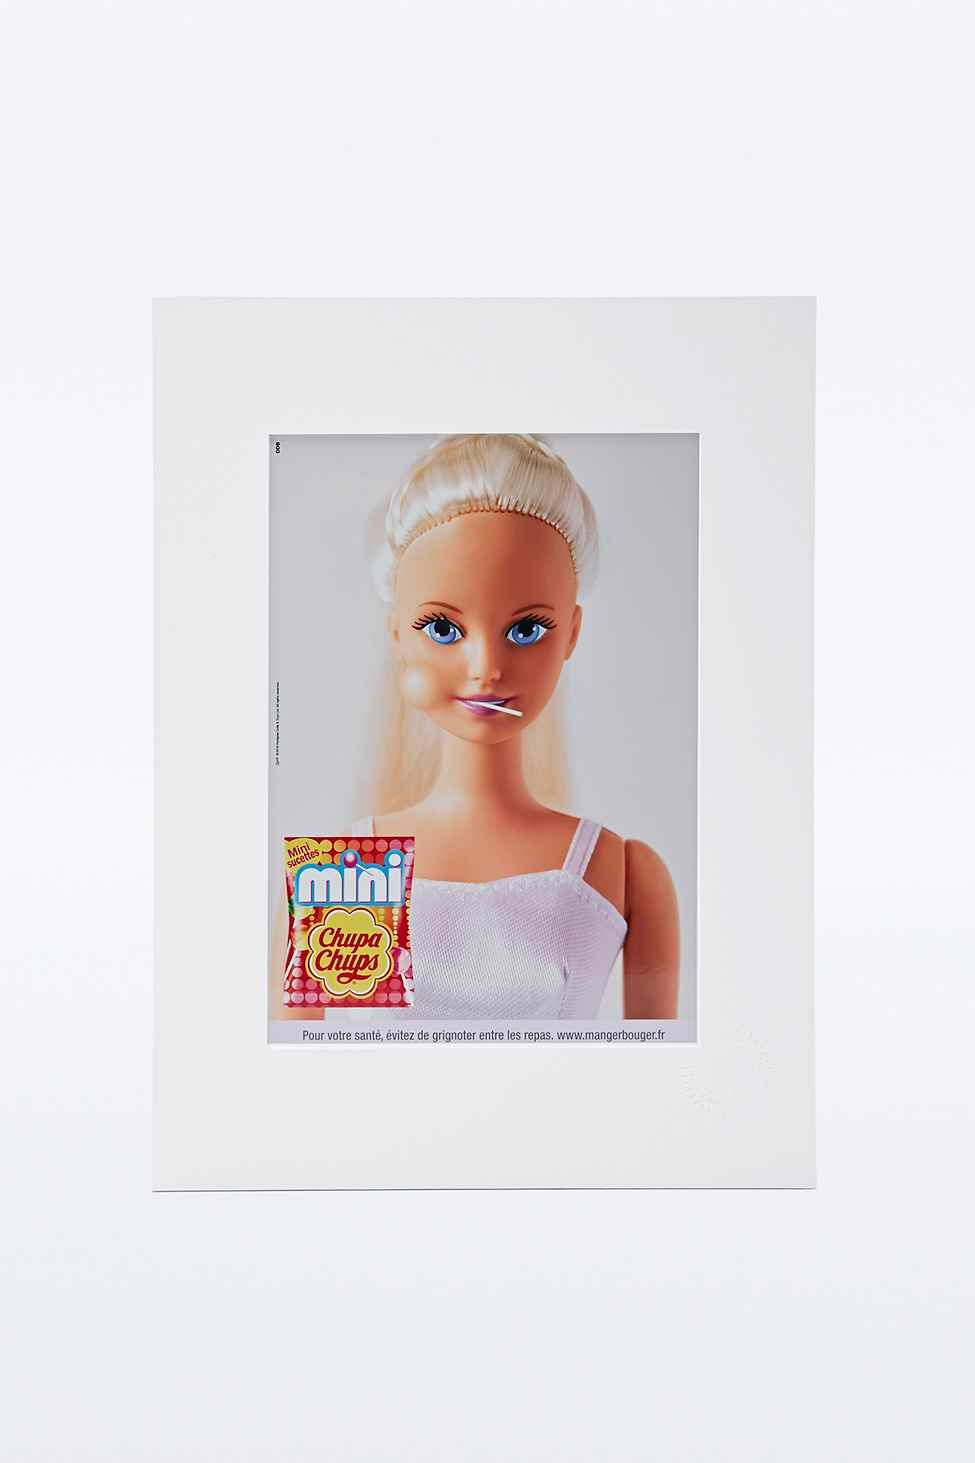 Fotodruck Poster Image Republic Barbie Chupa Chups Photographic Print Things For